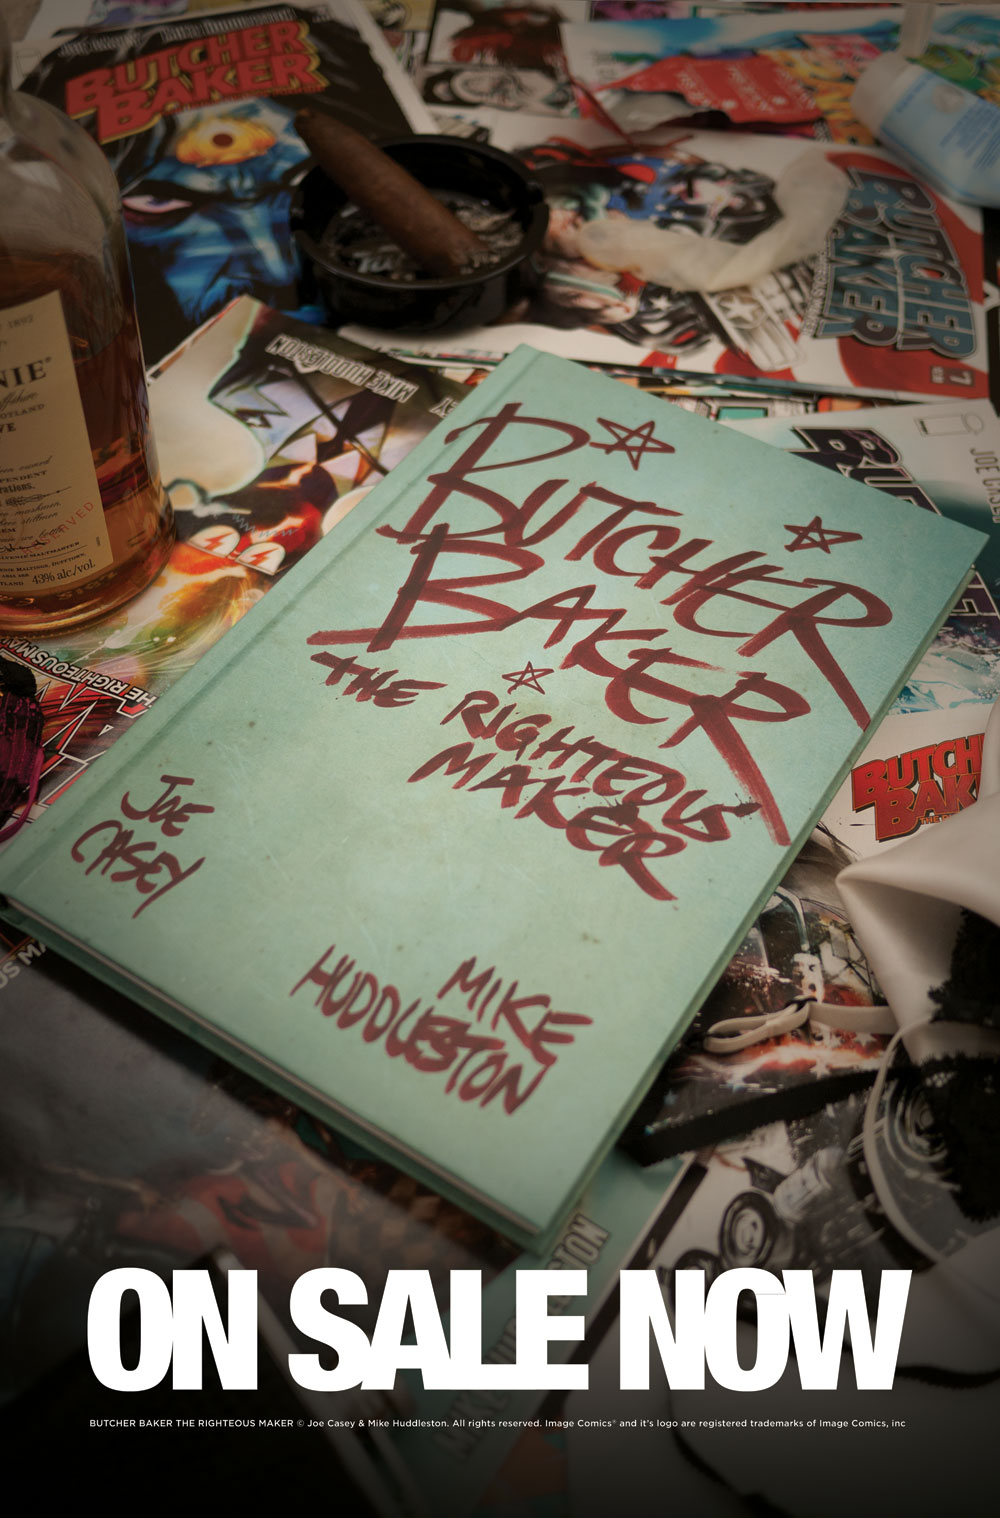 Ad: Butcher Baker the Righteous Maker